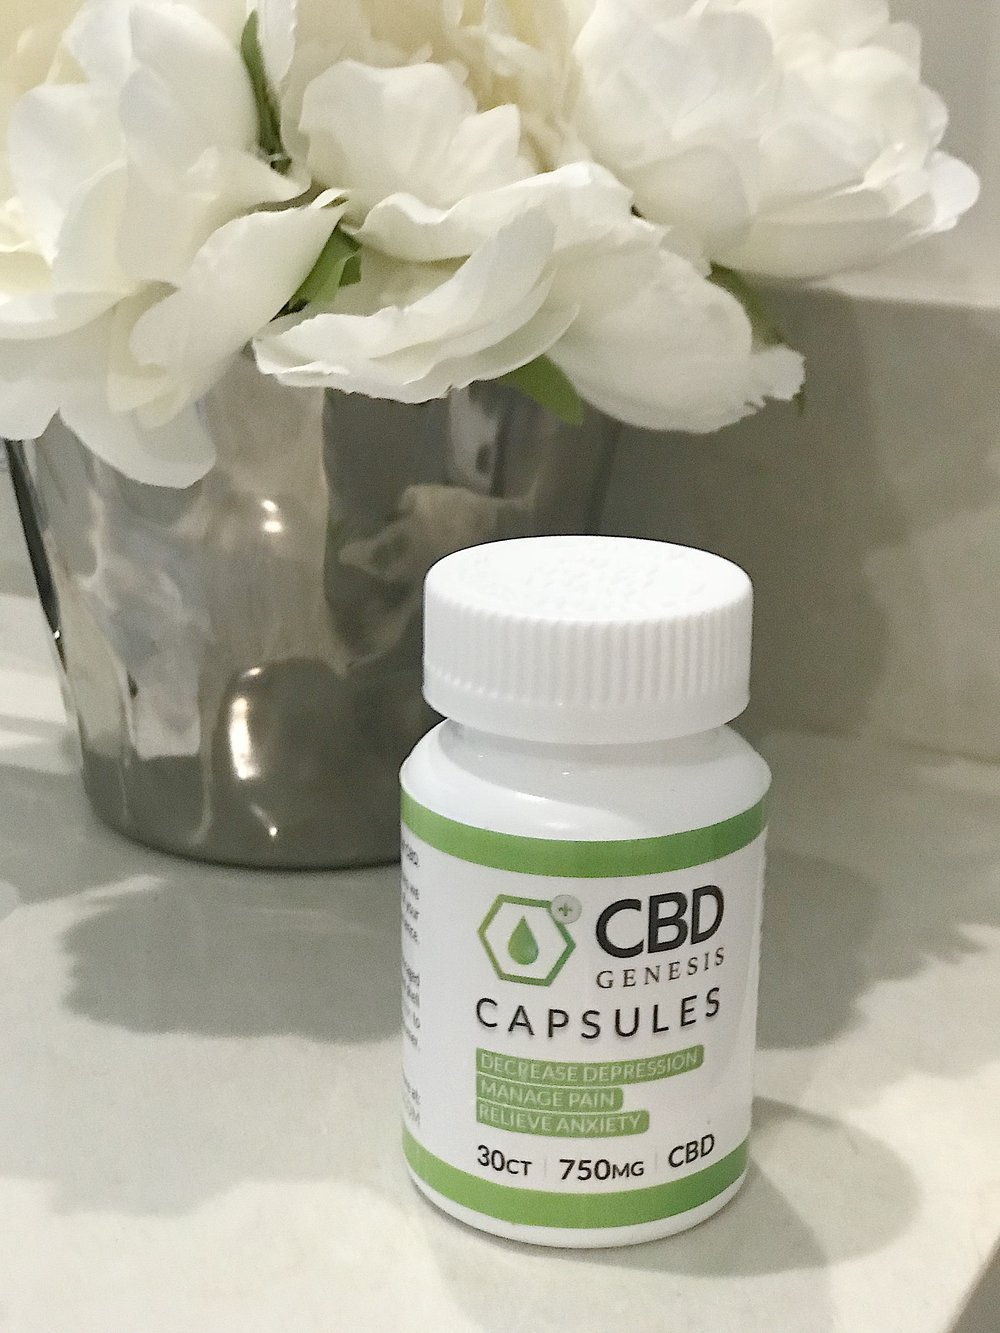 CBD Genesis 750MG Capsules     Photo:  Reformation Health